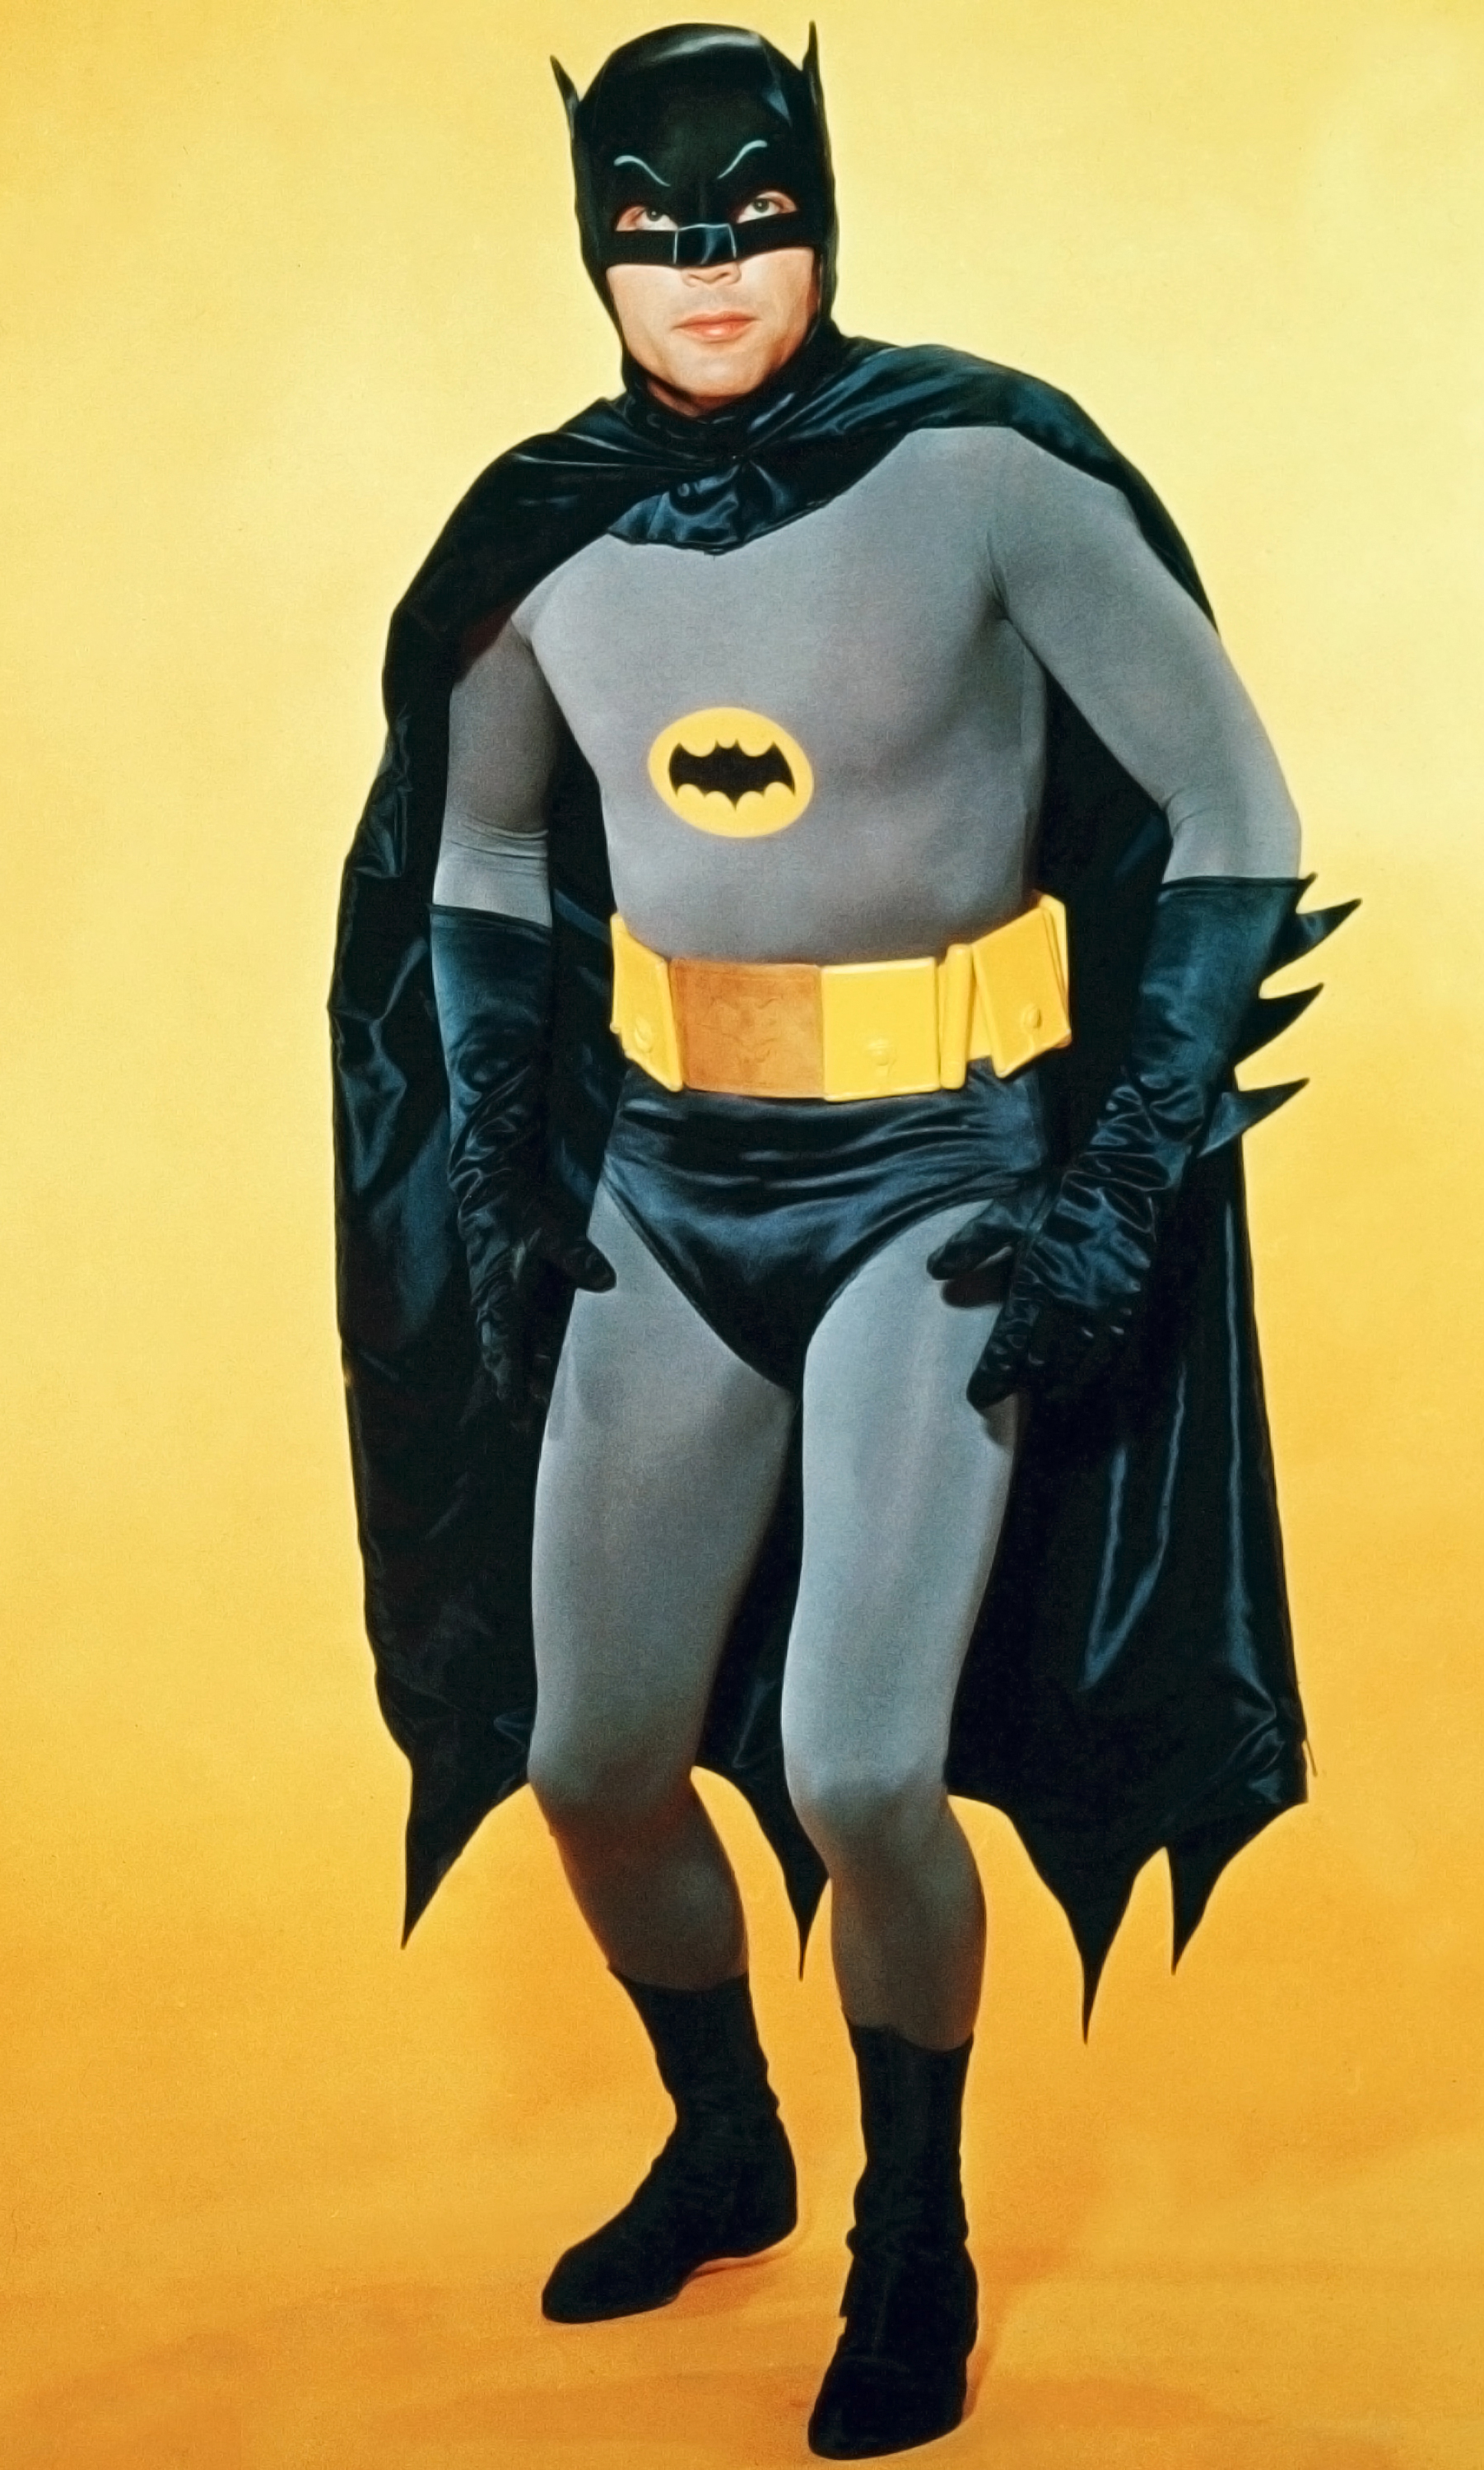 Adam West in the television series Batman in 1966.